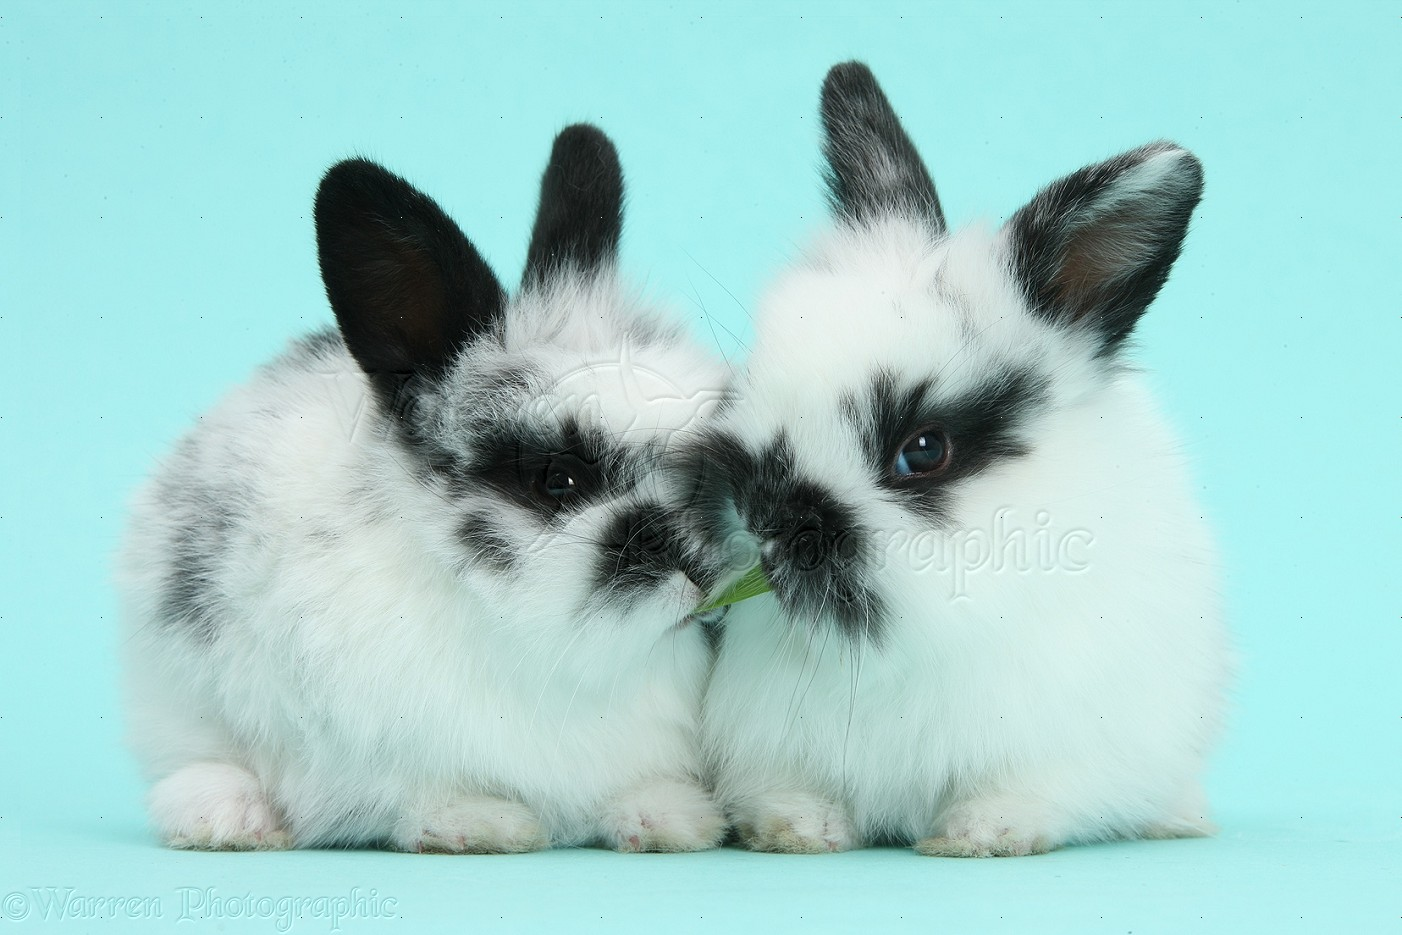 Cute black-and-white baby bunnies on blue background photo ... - photo#32